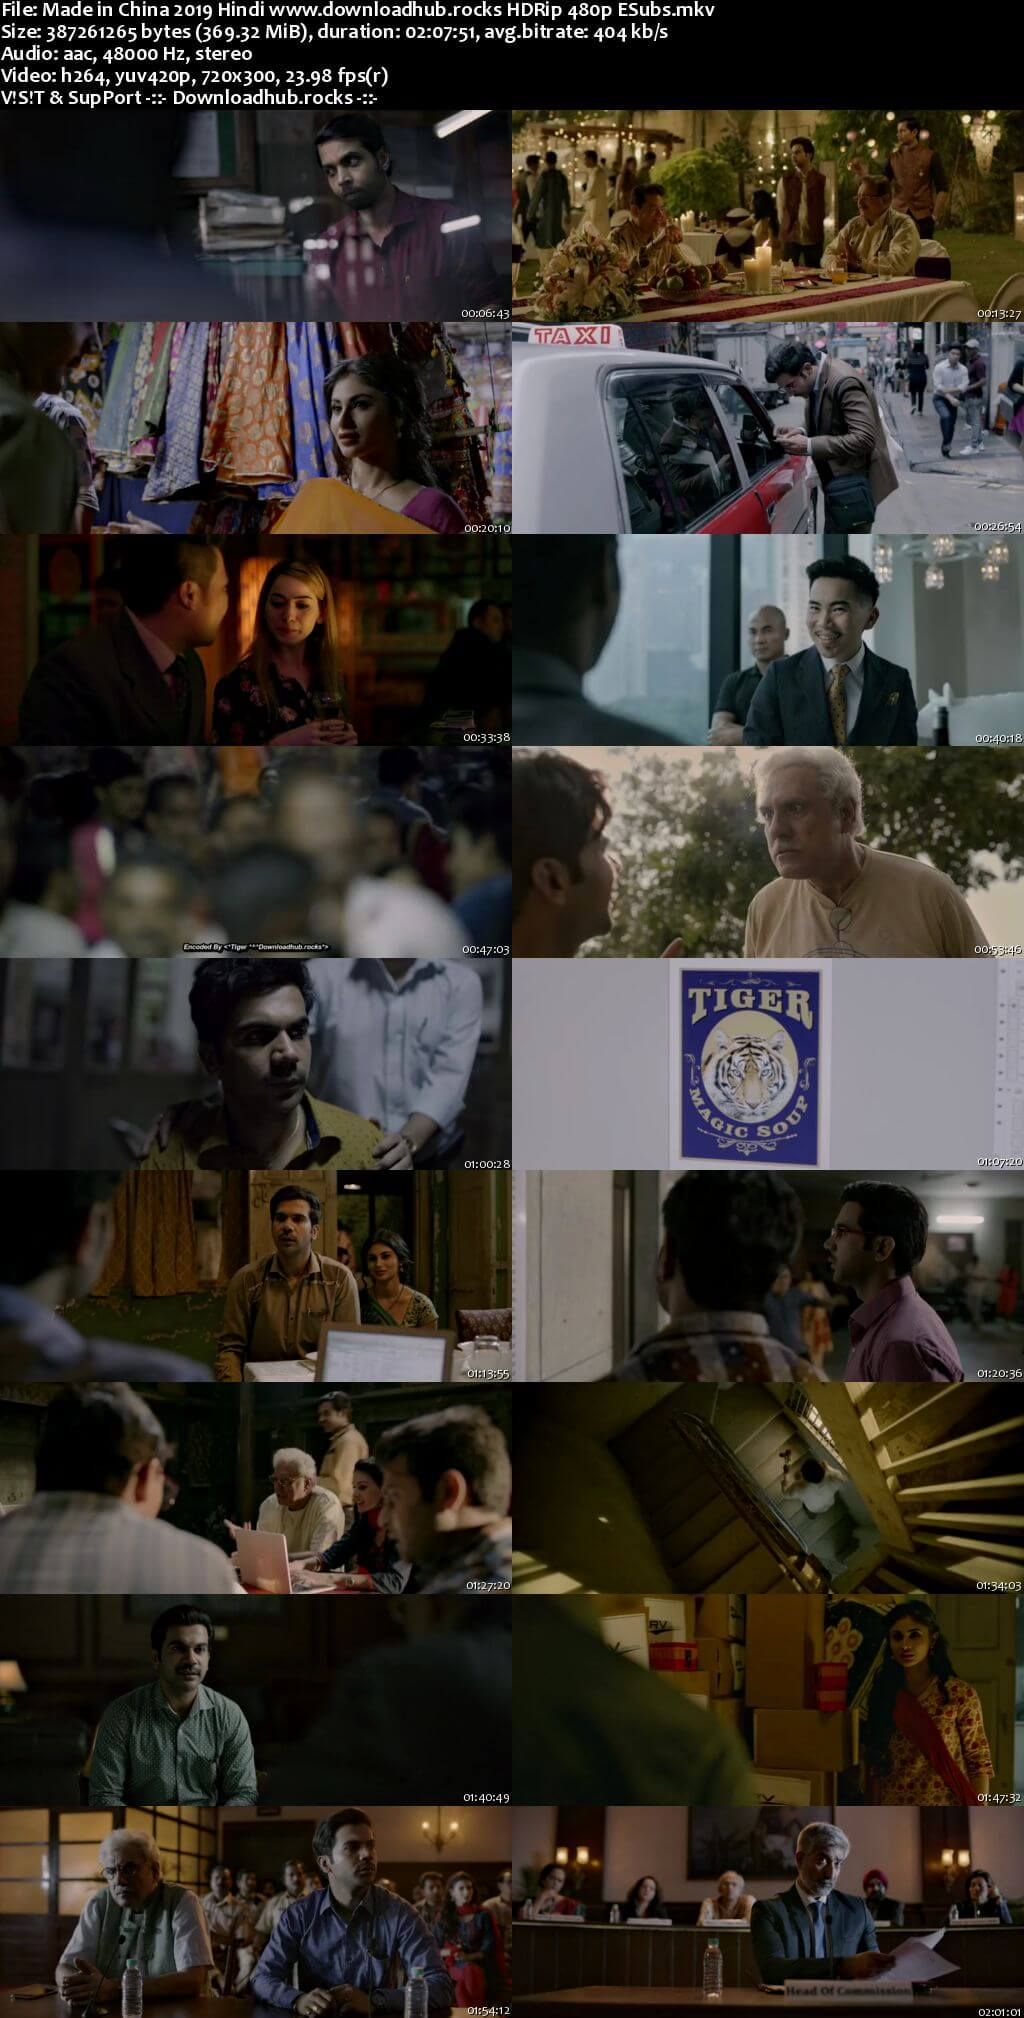 Made in China 2019 Hindi 350MB HDRip 480p ESubs Full Movie Download 1